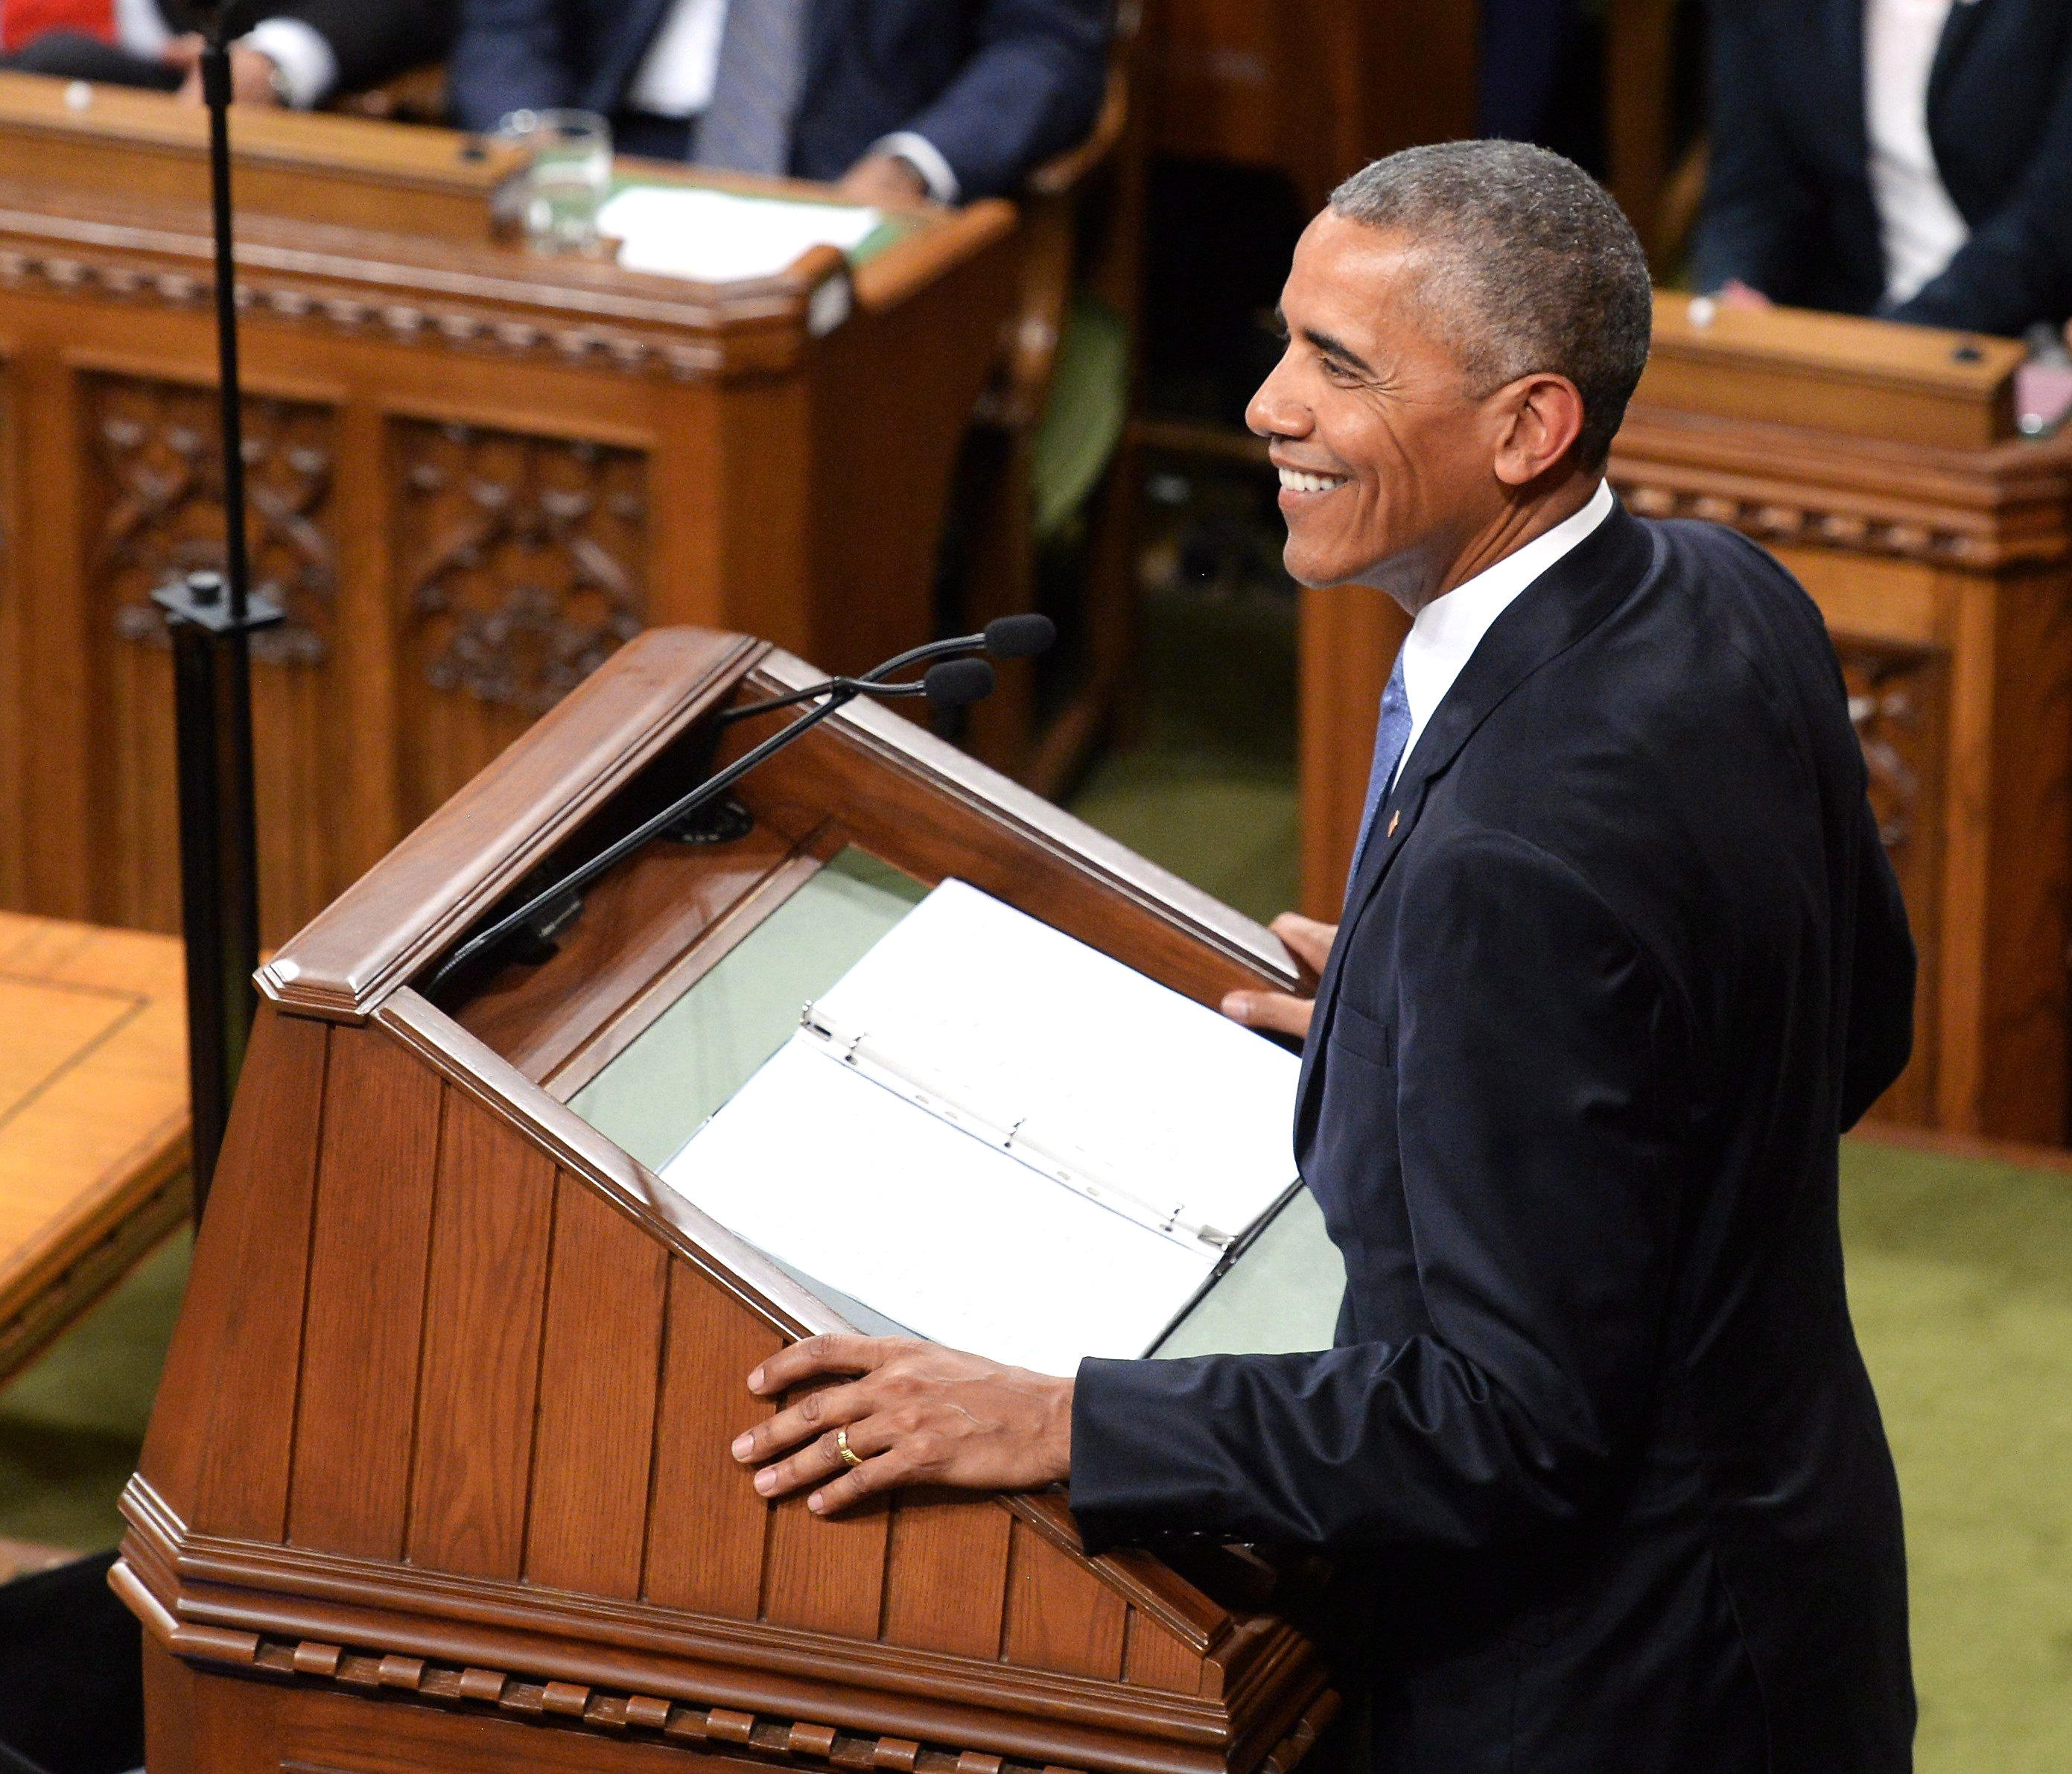 President Barack Obama speech at Parliament, Ottawa Canada 29 June 2016 Google image from http://www.macleans.ca/wp-content/uploads/2016/06/Obama-Parliament.jpg